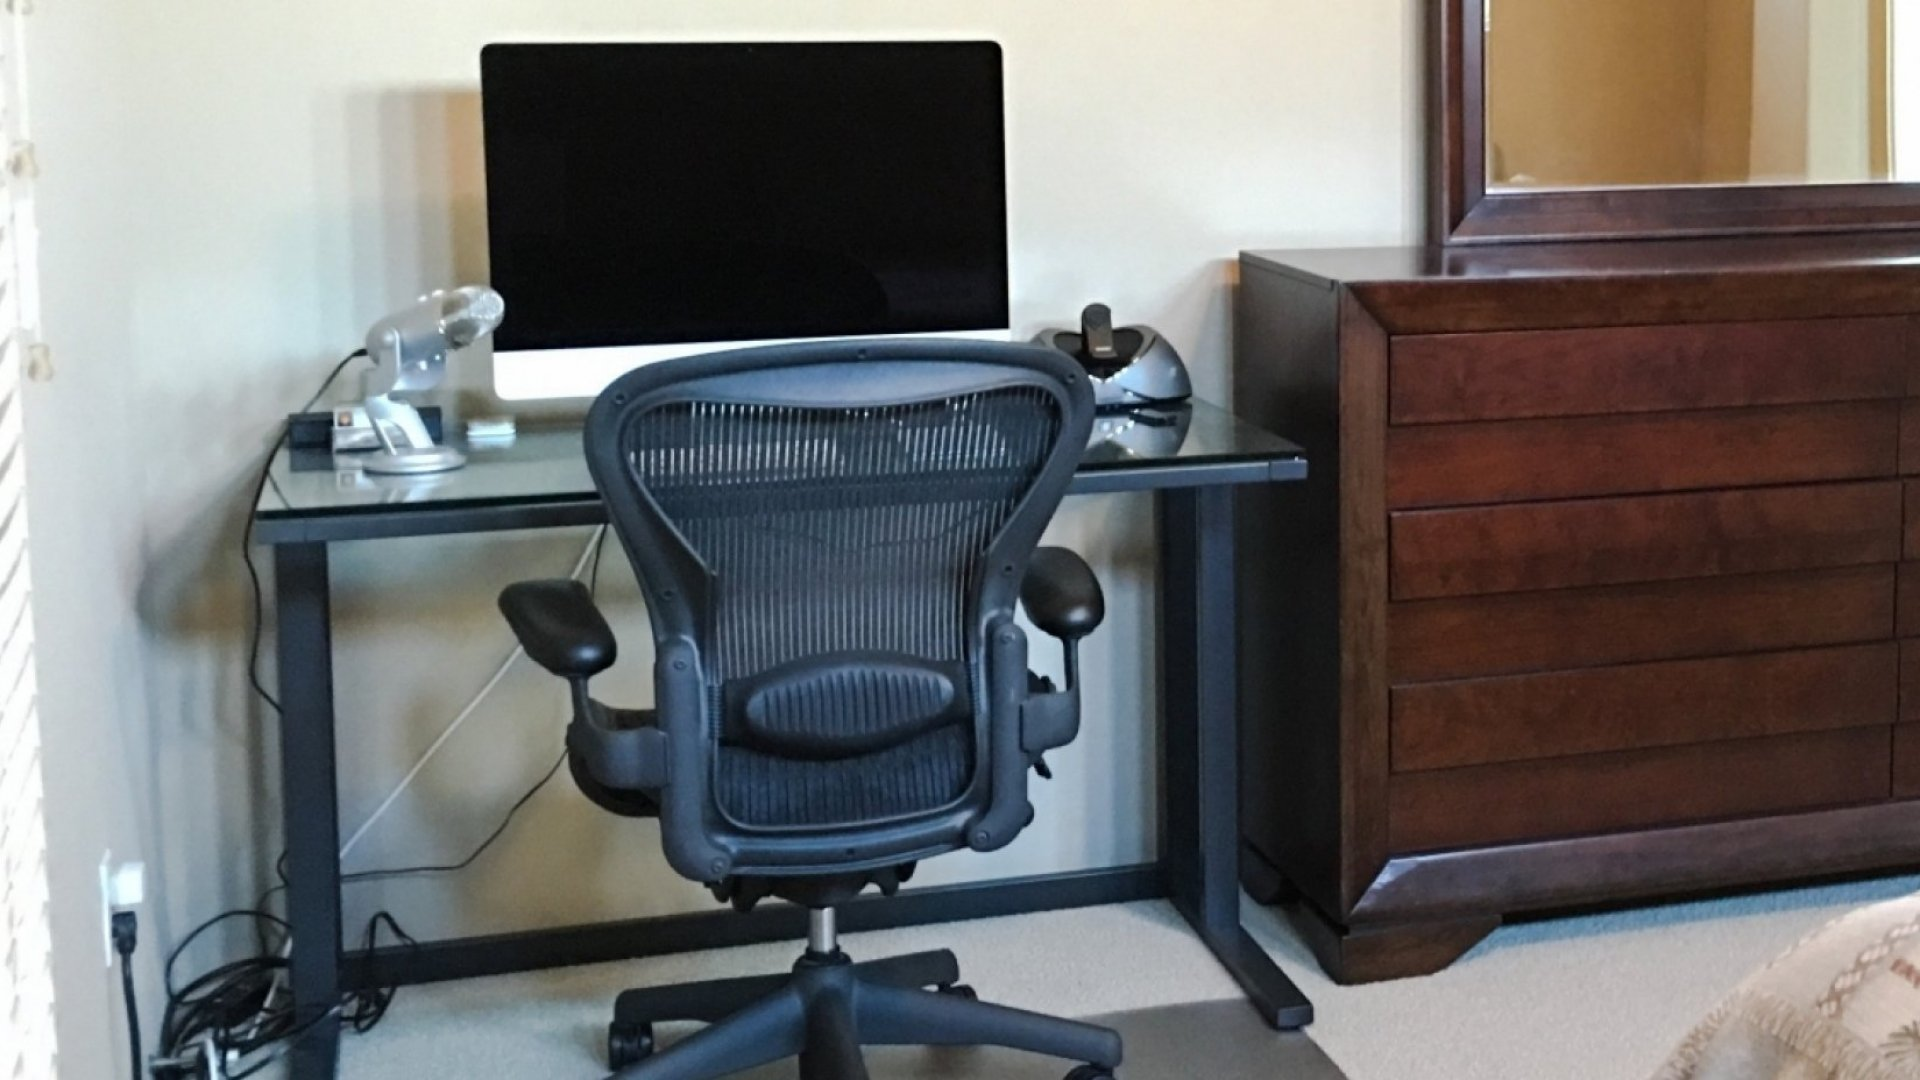 A Beginner's Guide to Working From Home Without Driving Yourself and Your Family Crazy